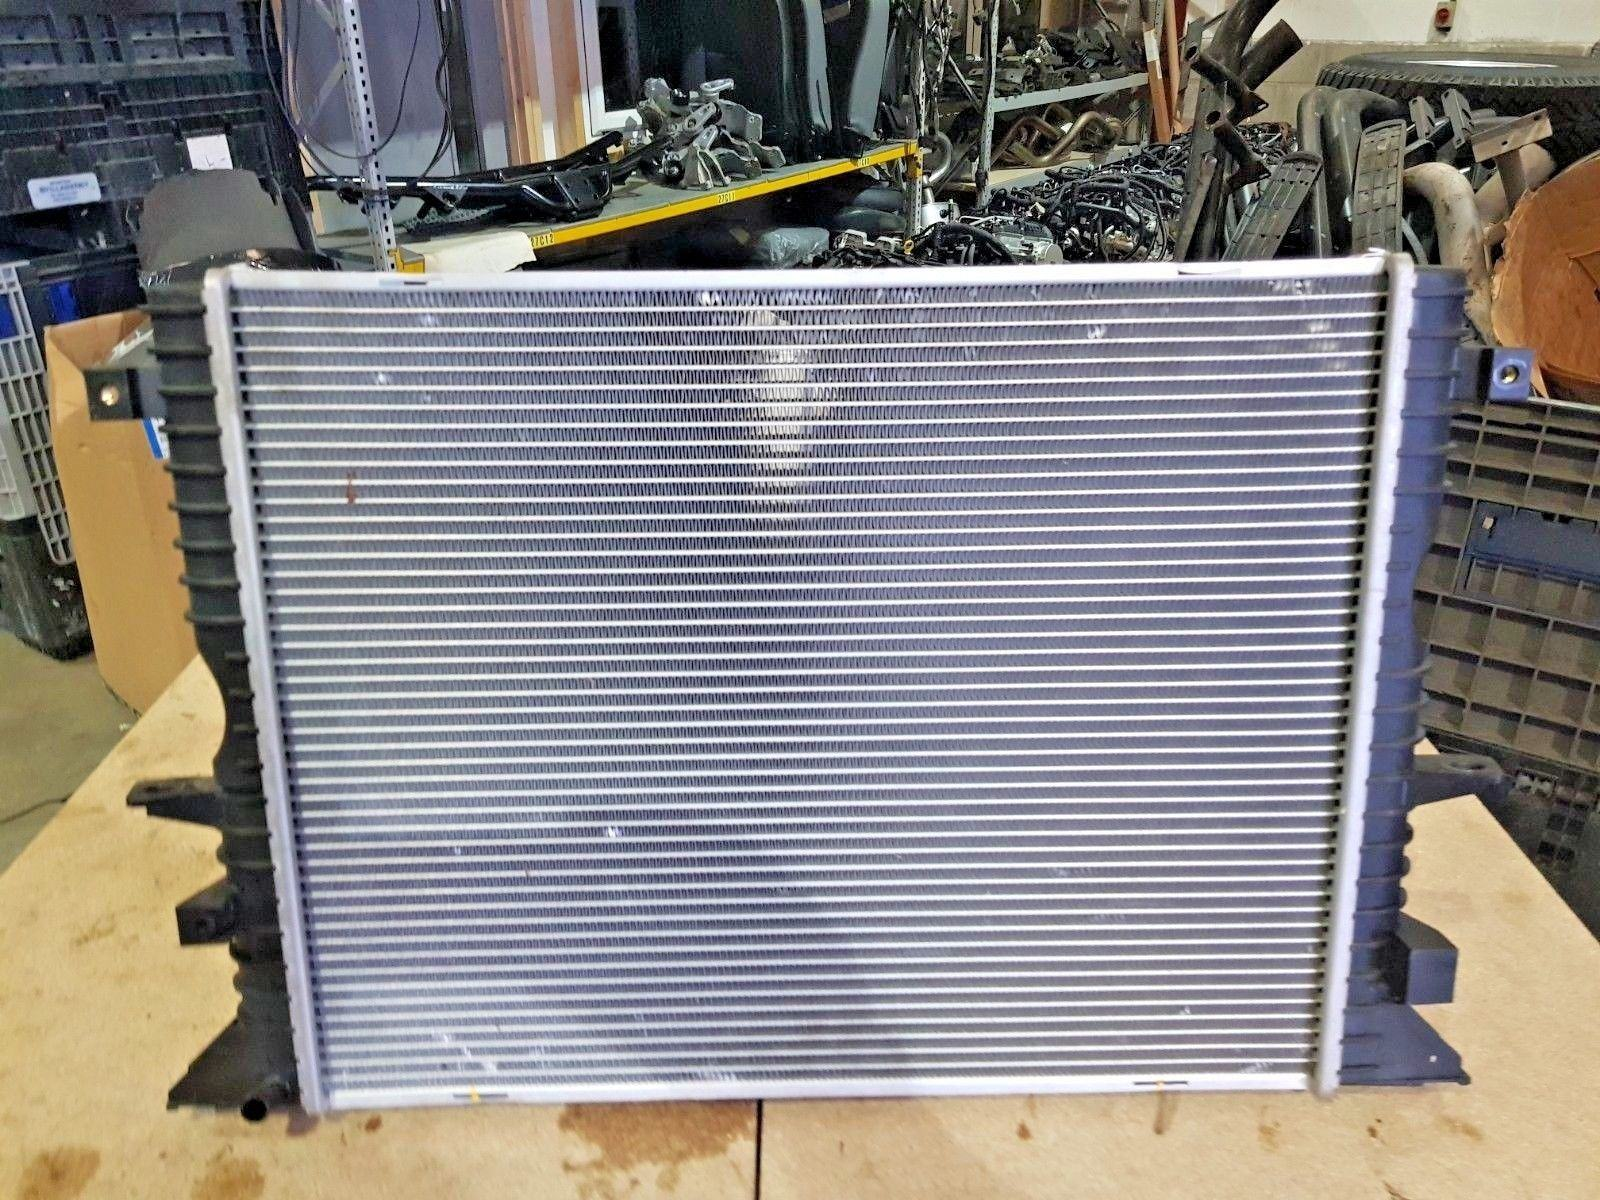 Land Rover Defender 07-16 Engine Cooling Radiator 2.4/2.2 Tdci Diesel PCC001020's featured image